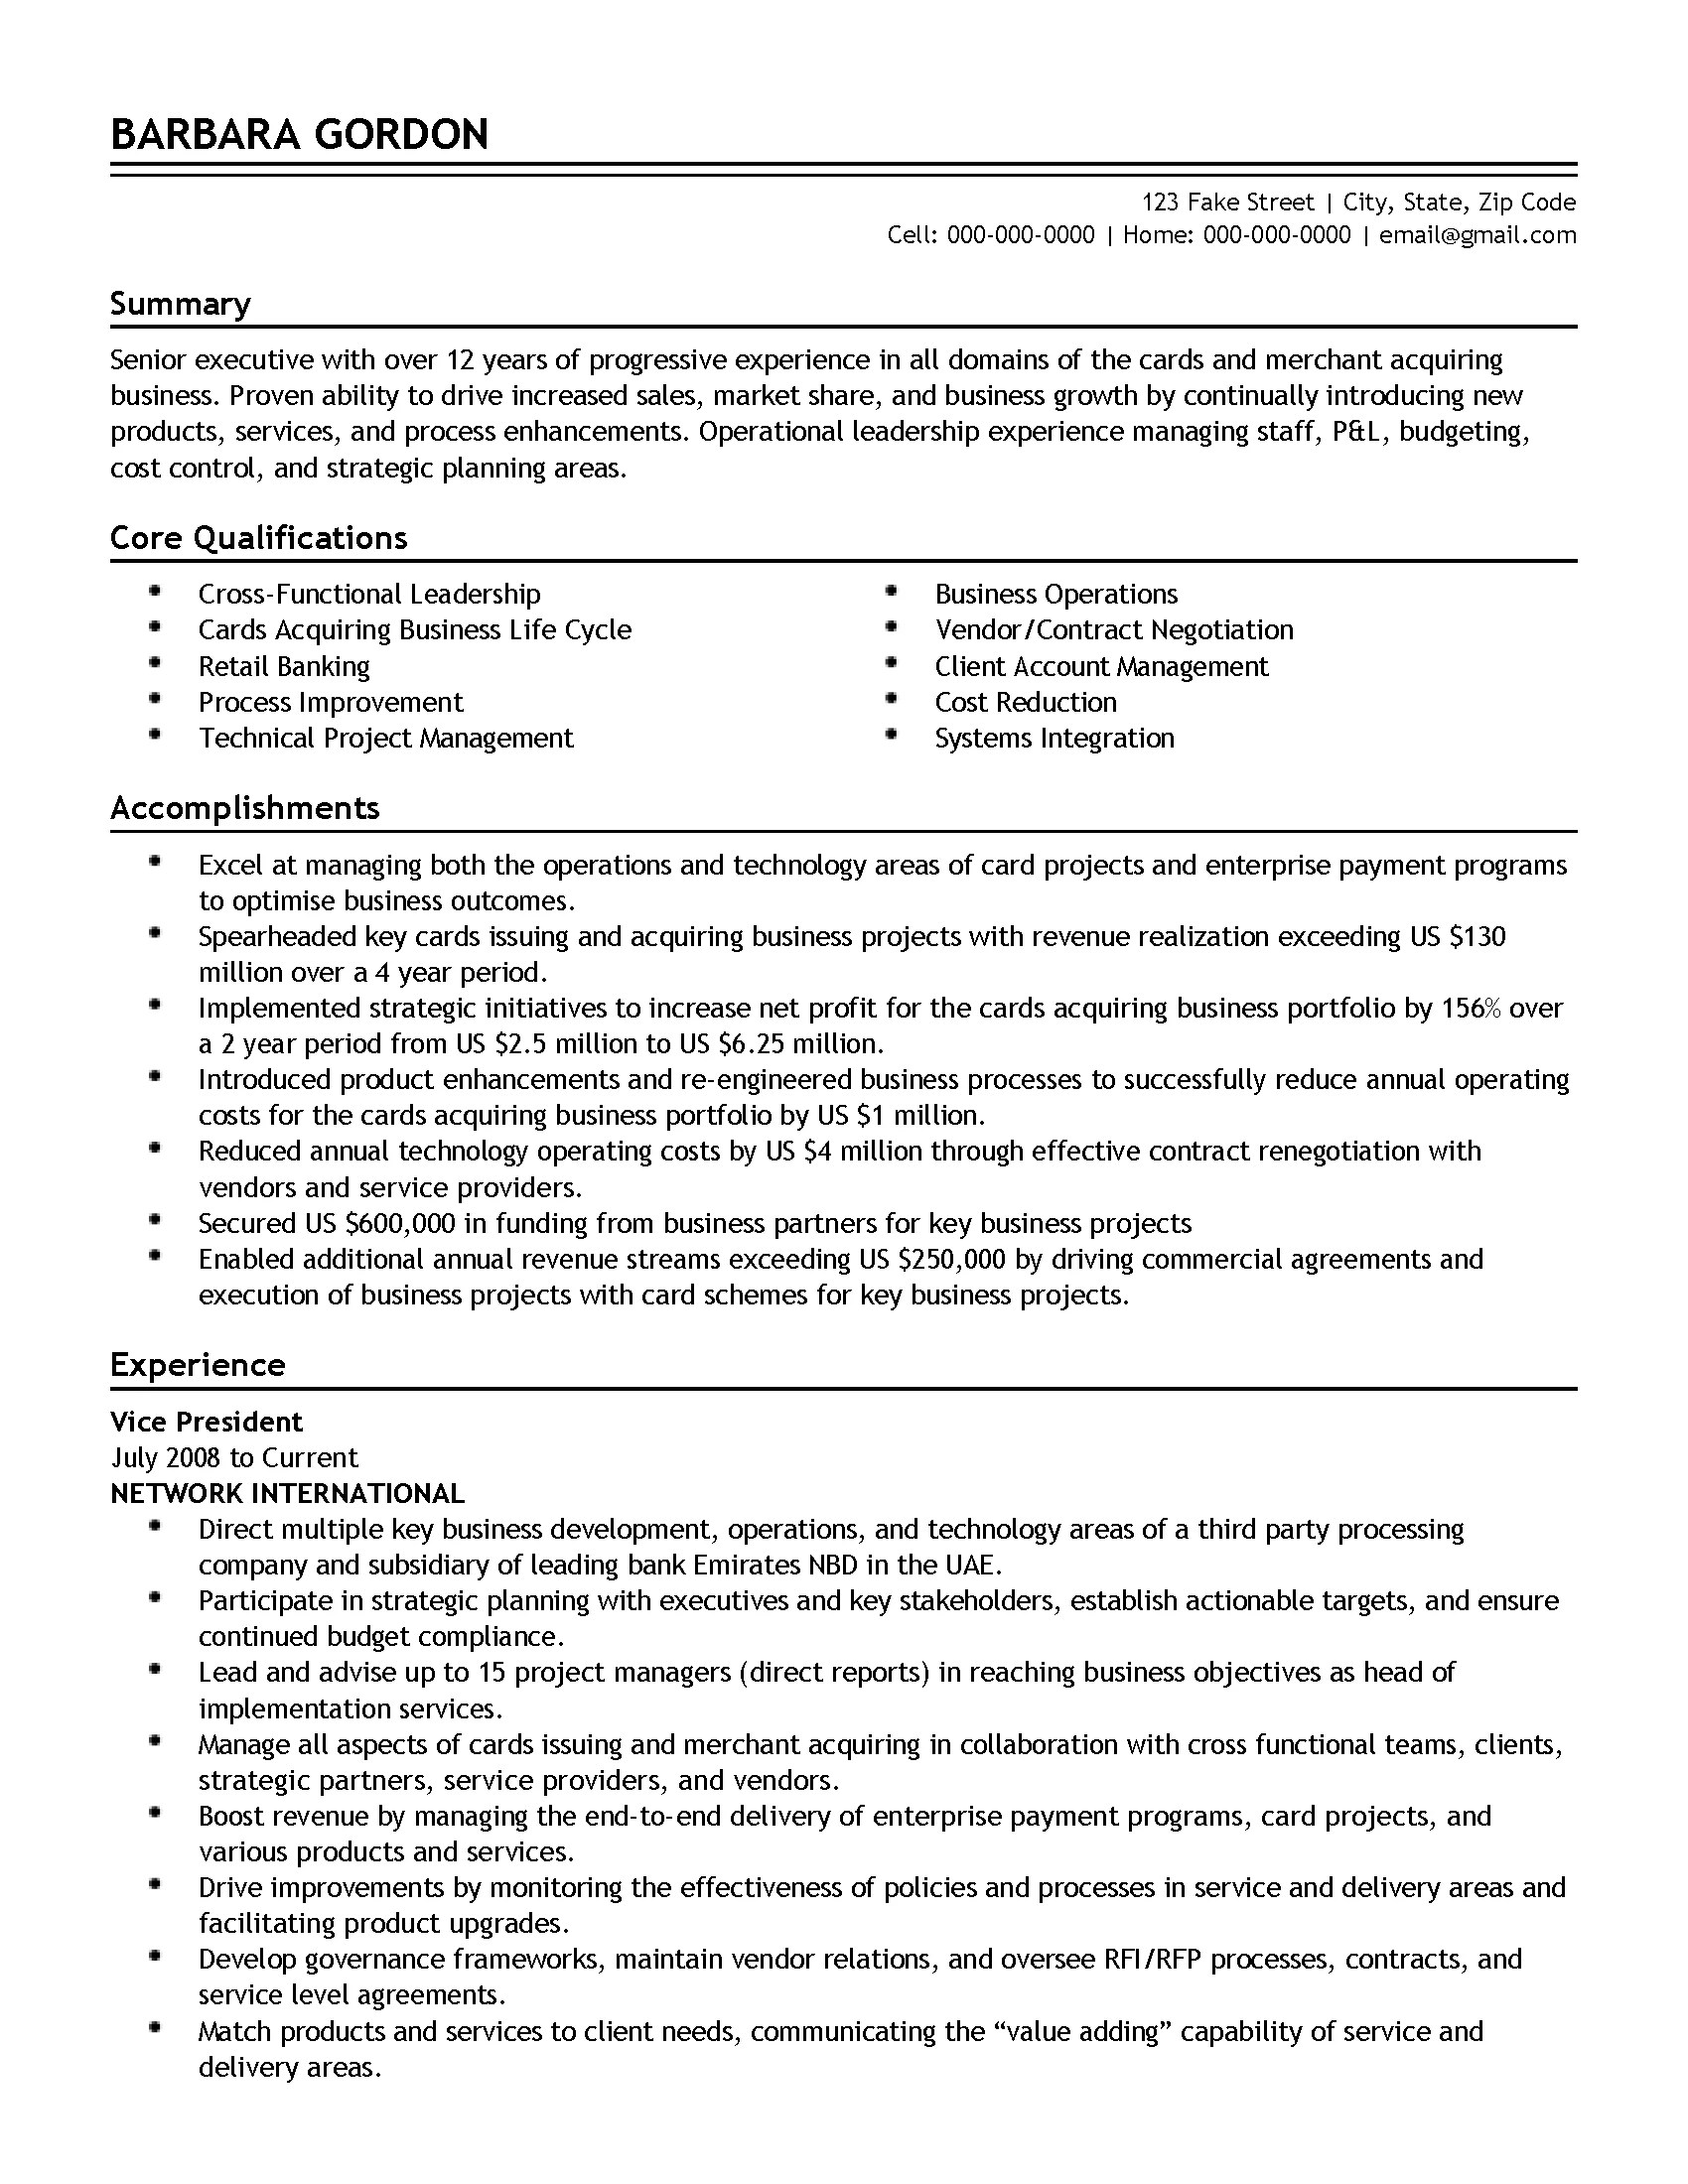 Commercial Banker Resume Professional Corporate Banking Executive Templates To Showcase